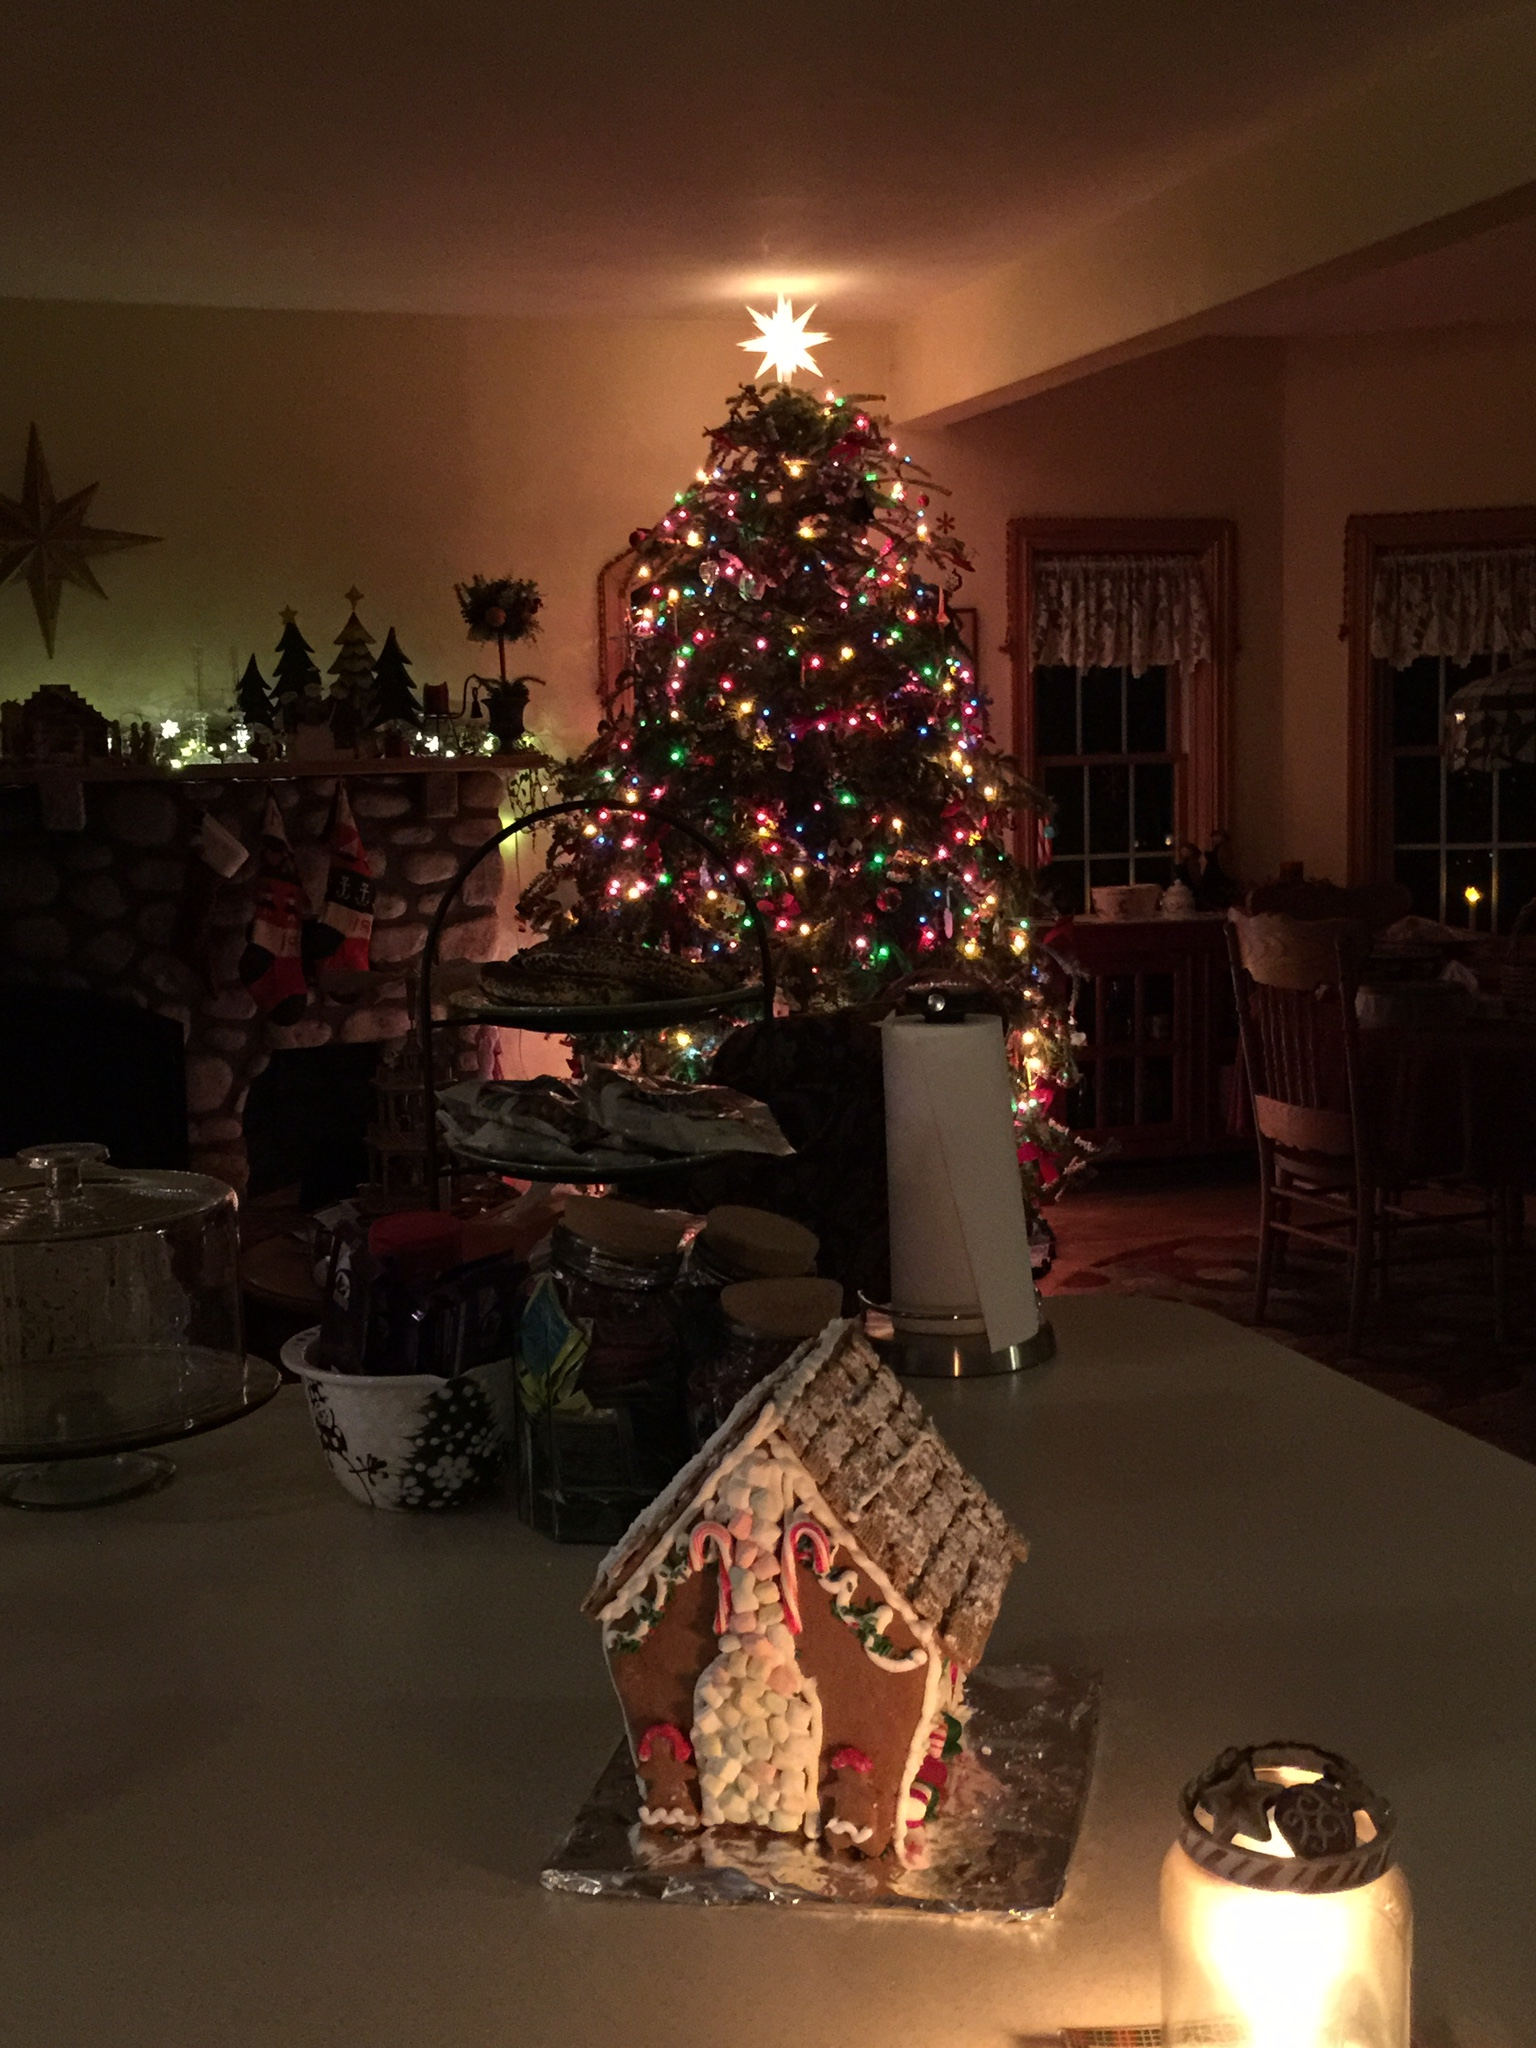 I was lamenting that I did not want to take down the tree and decorations the next day... it was sooo beautiful at night.